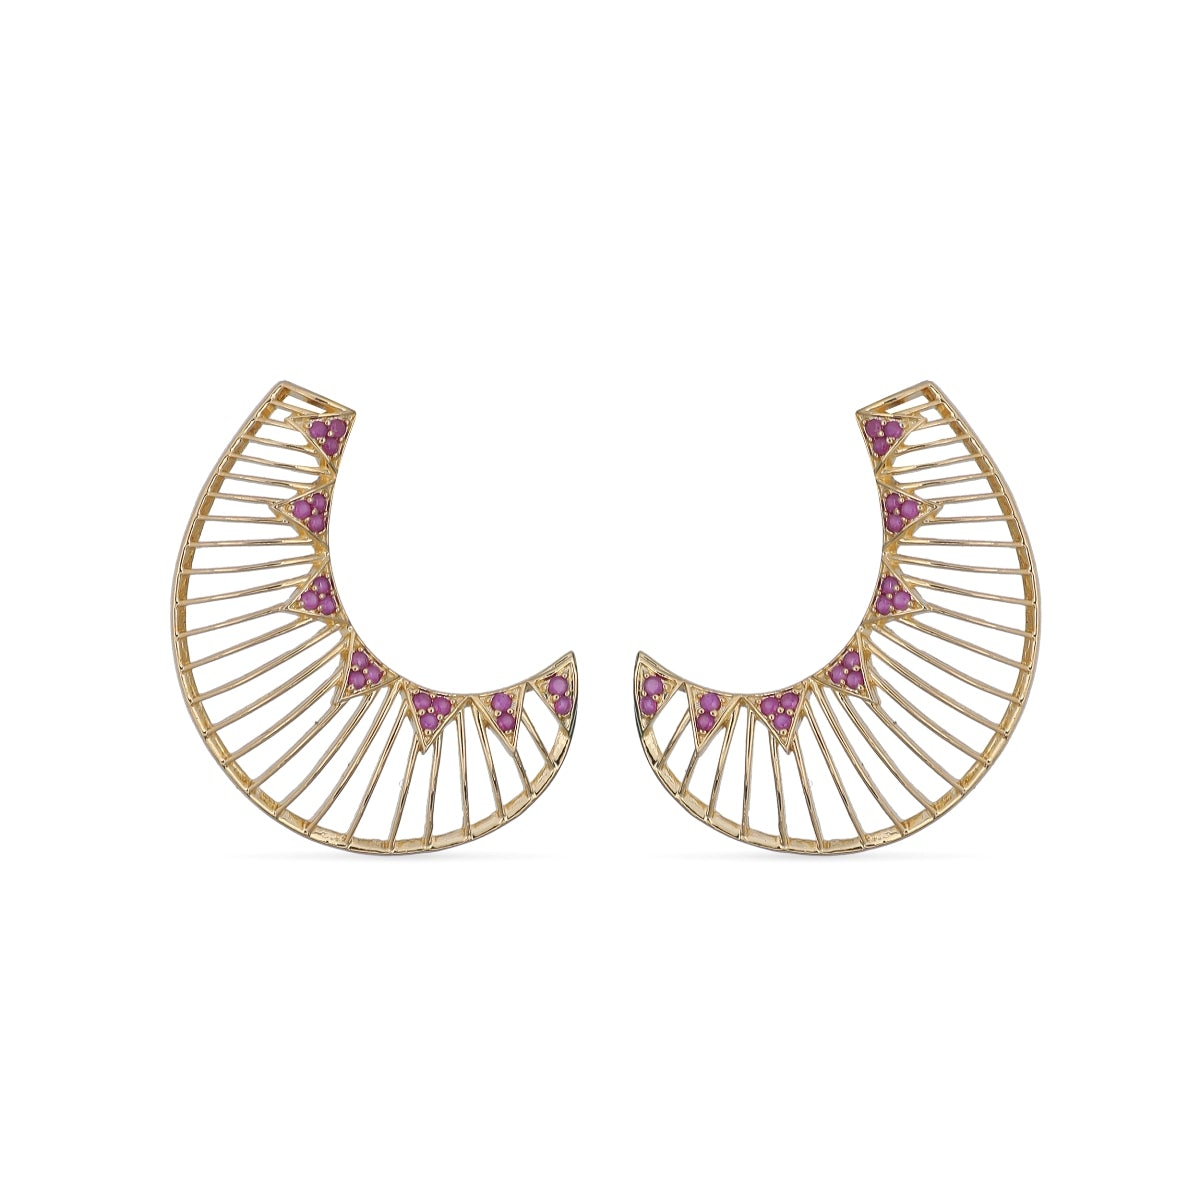 Aahna Nakshatra CZ Earrings